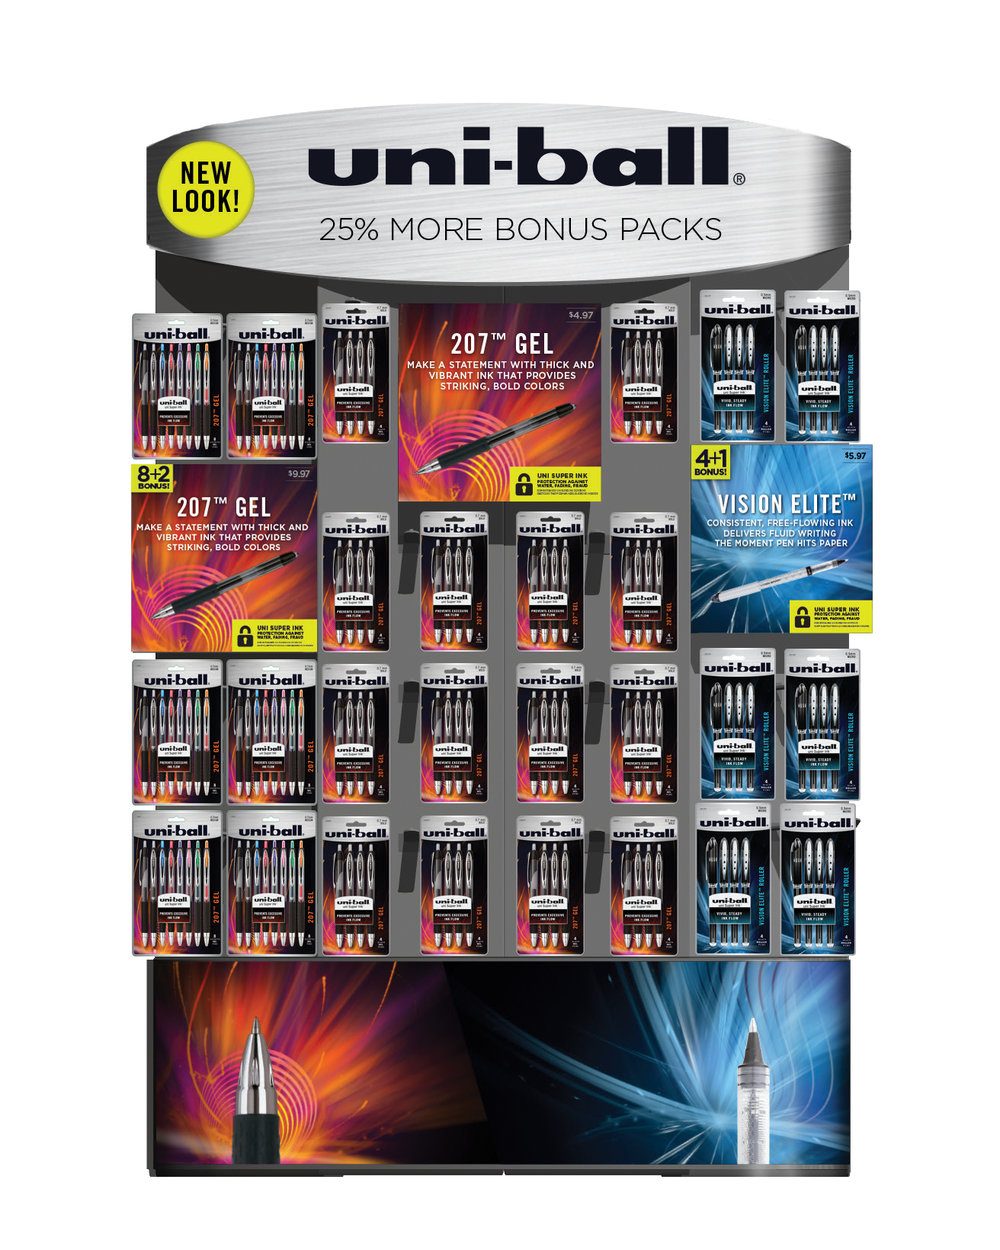 uniball_display1.jpg